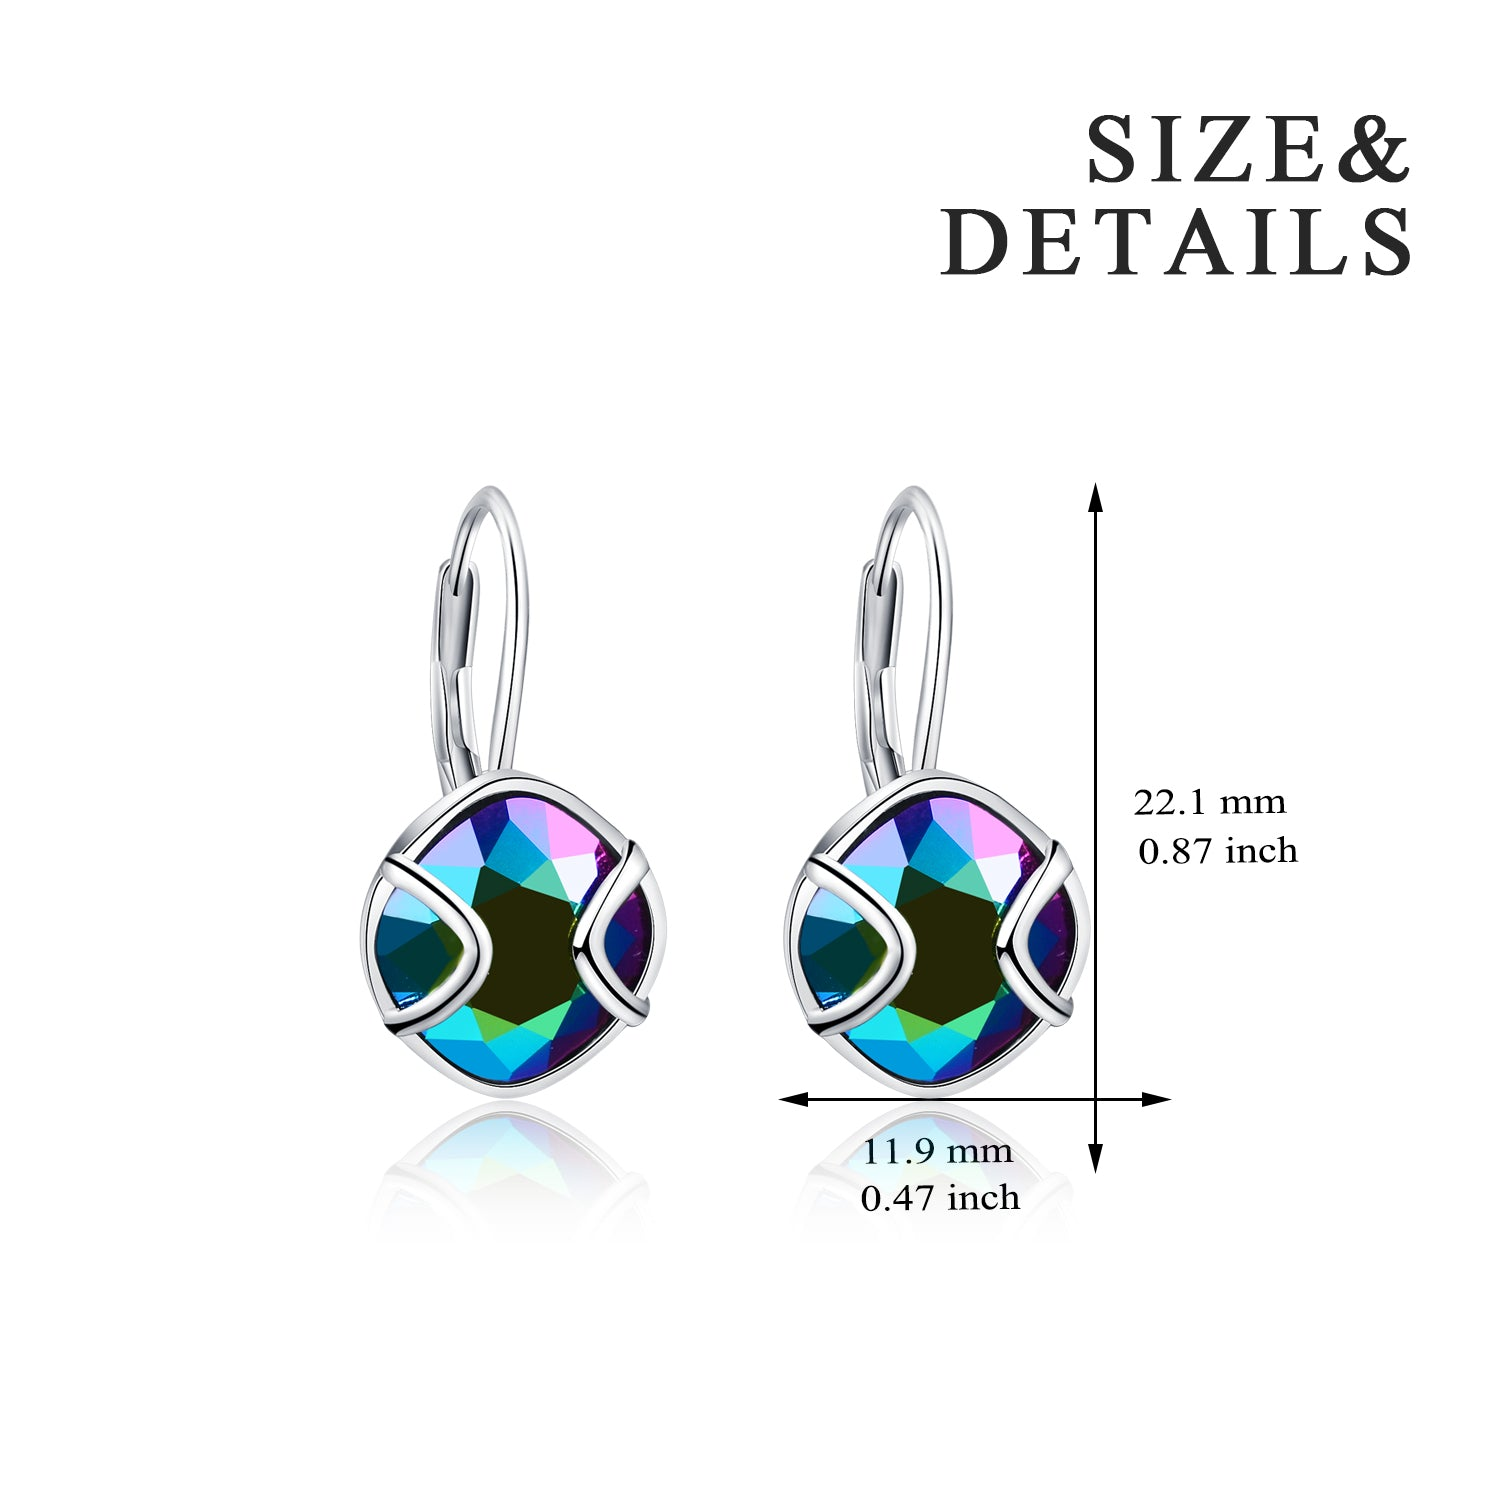 Round Gemstone Design Rare Crystal Pendant Earrings for Women